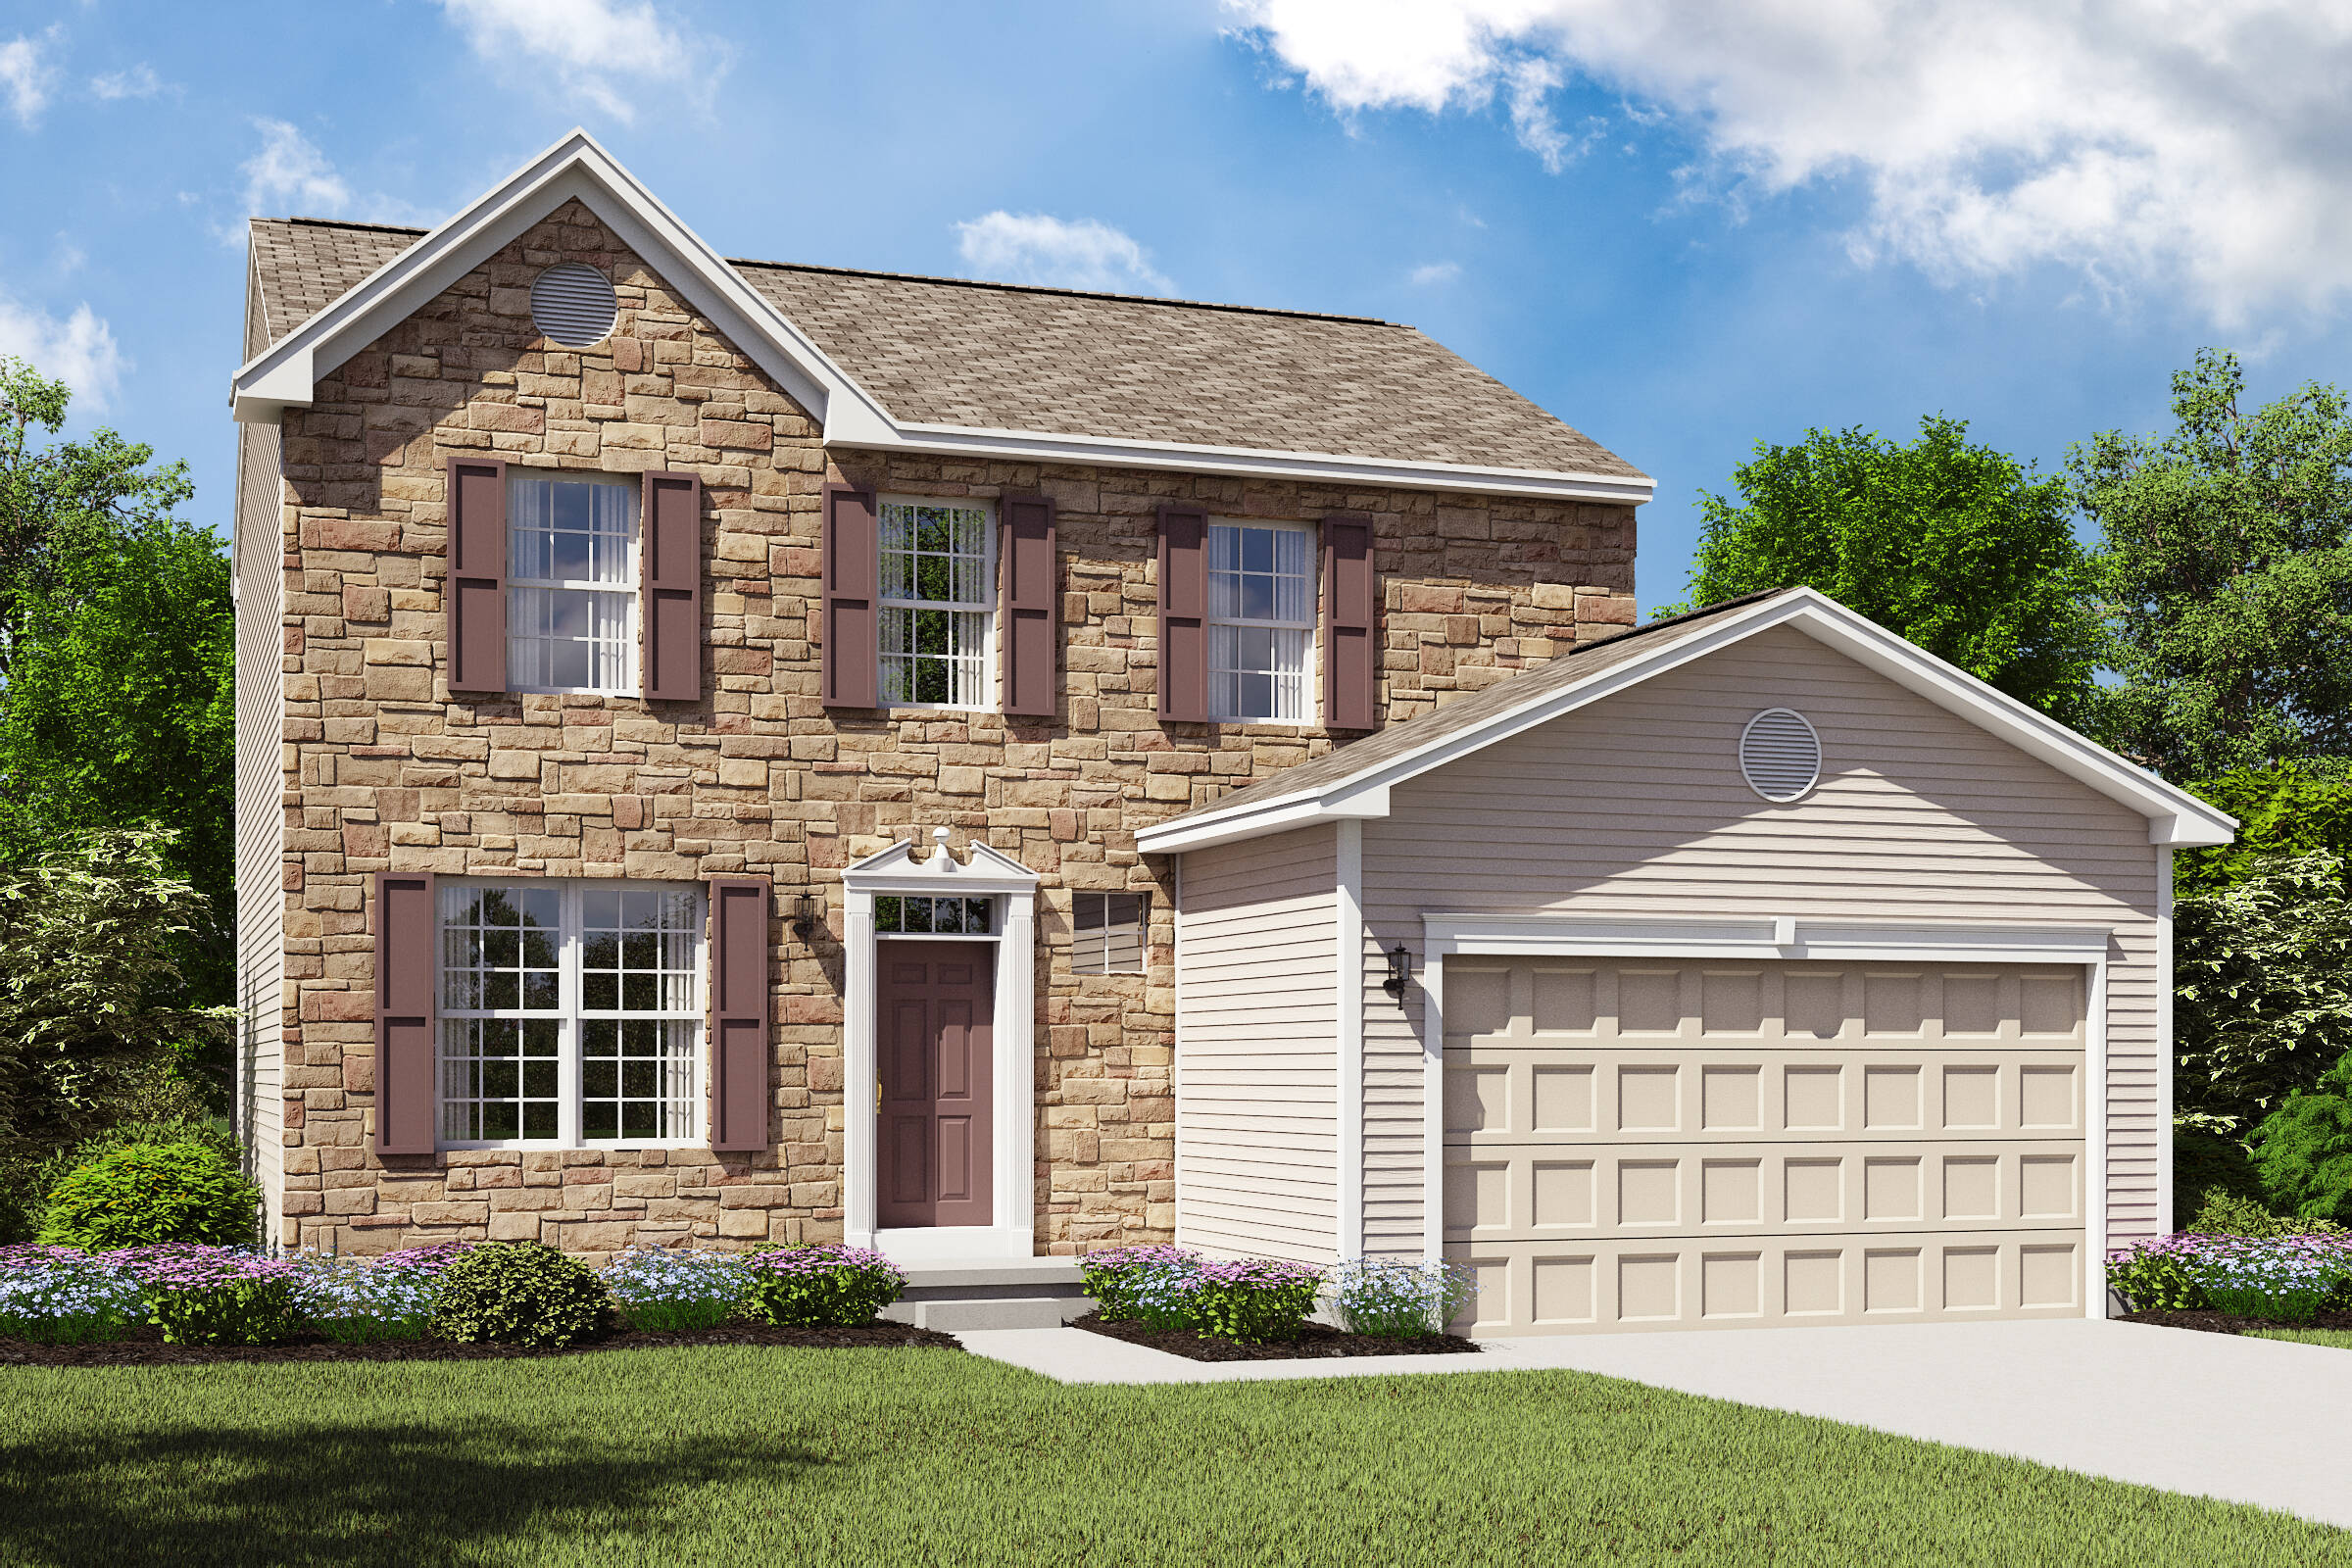 Concord II BT k hovnanian new homes cleveland